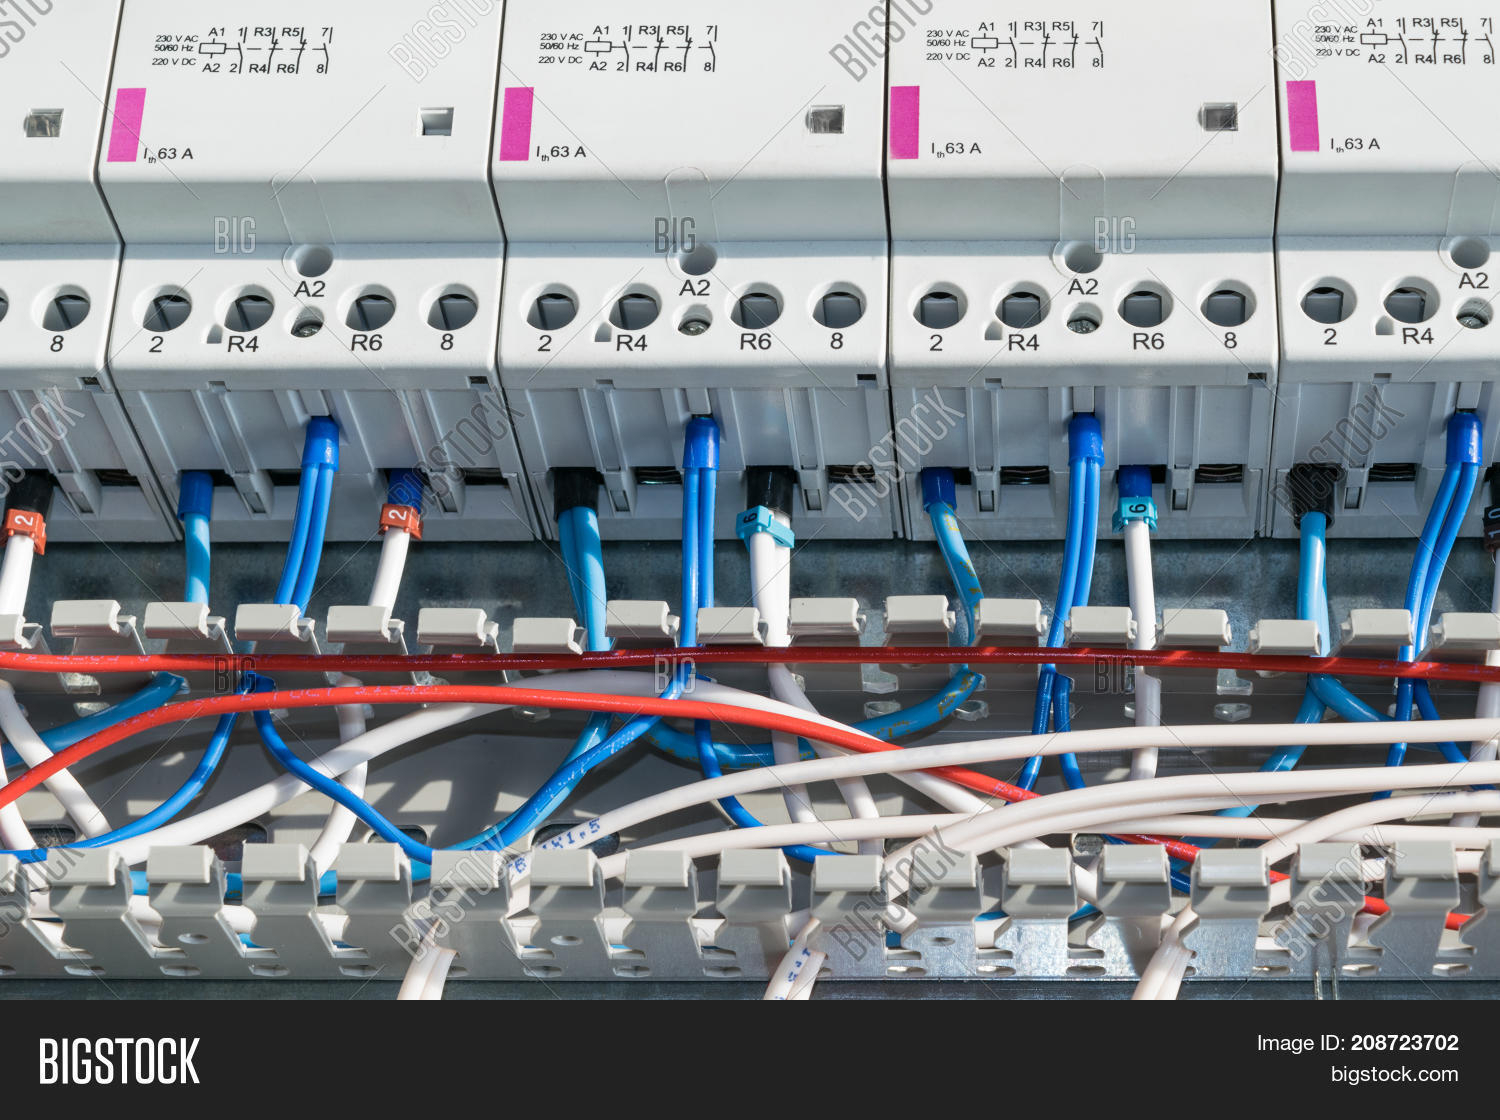 Number Modular Image Photo Free Trial Bigstock 230 Vac Wiring A Of Contactors Cable Channel And Wire Laid In The